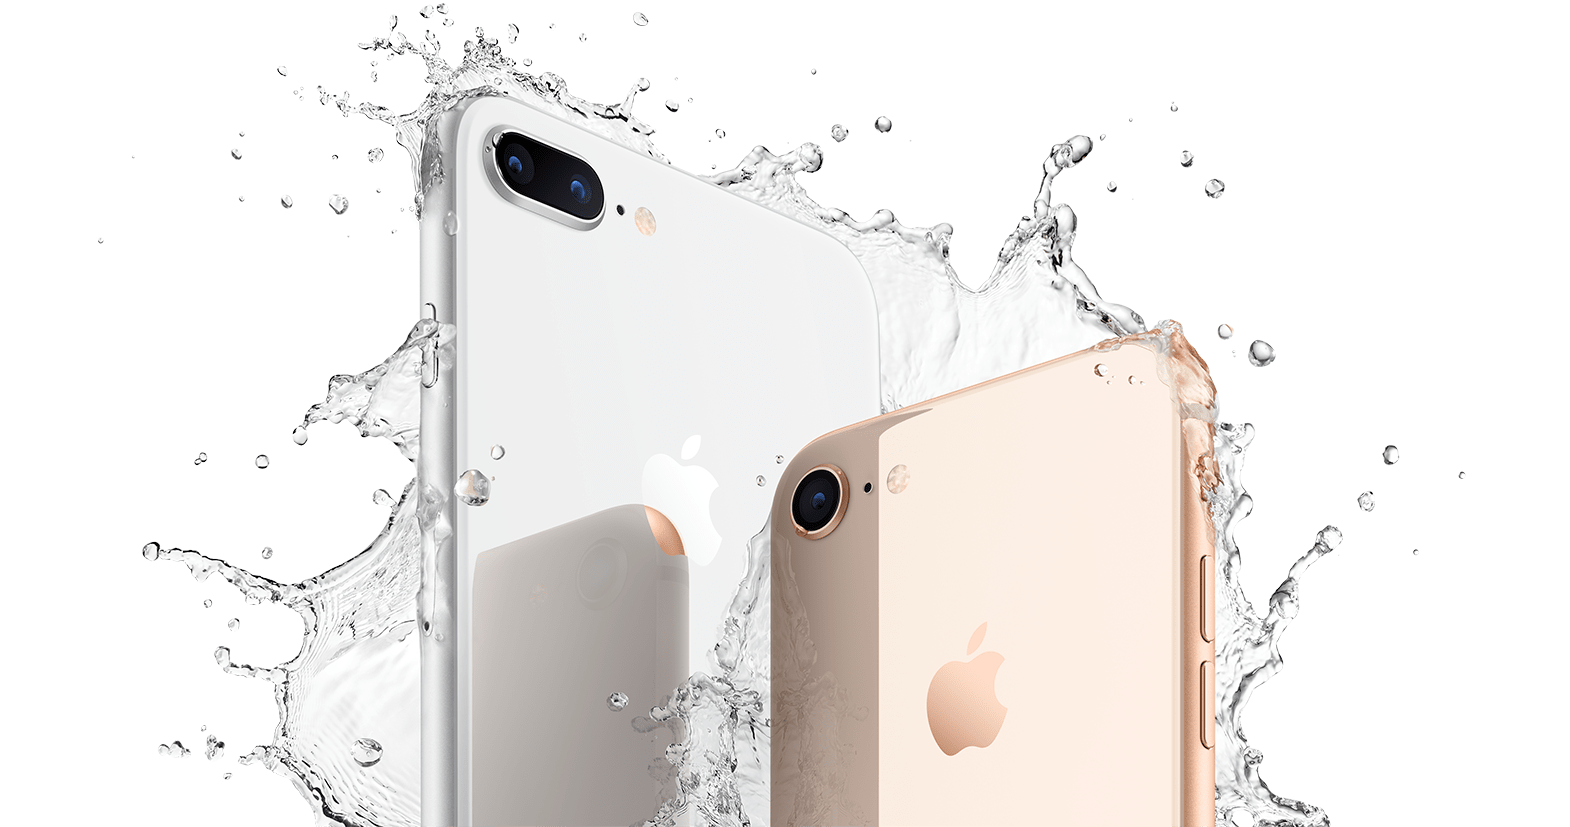 iPhone 8 is water proof